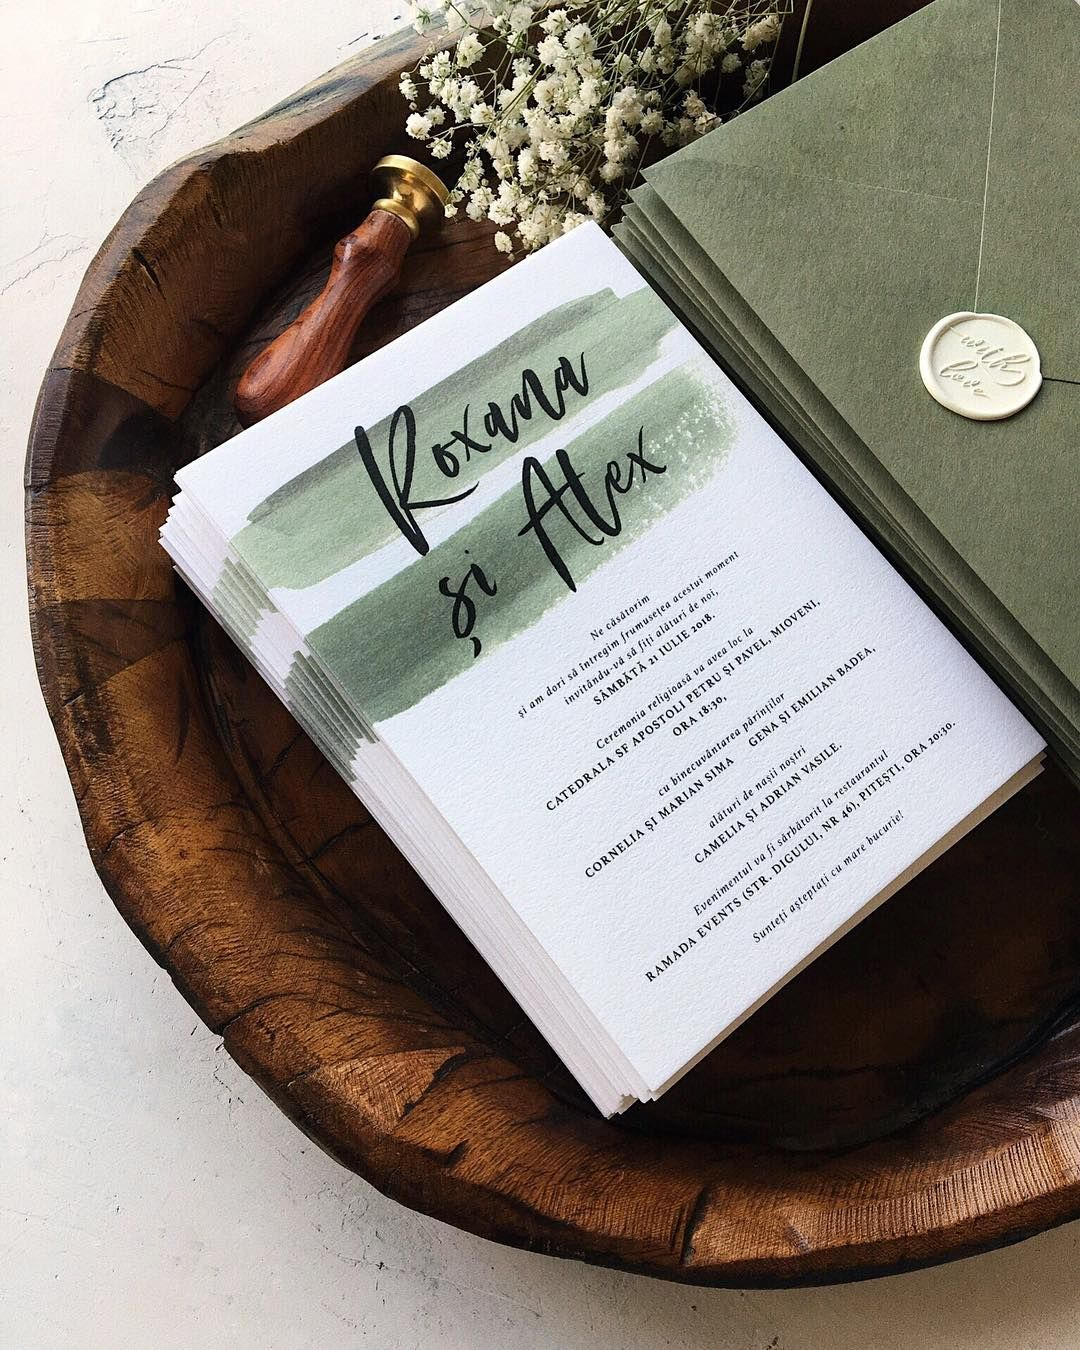 Minimalist green wedding invitations, handmade green envelopes and white wax seal / © PAPIRA invitatii de nunta personalizate si sigilii de ceara #invitatiinunta #invitatii #menus